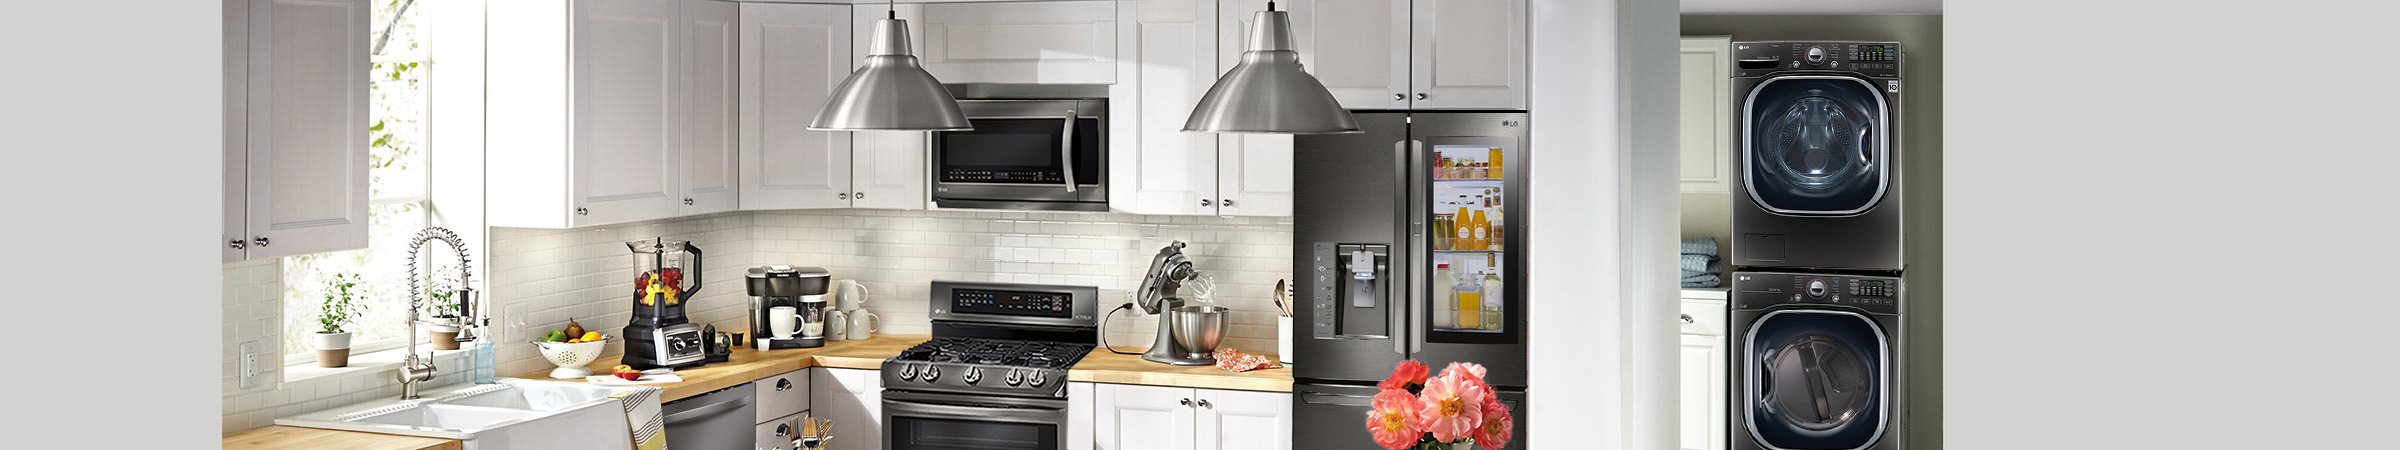 LG Appliance Options: LG Appliances - Best Buy